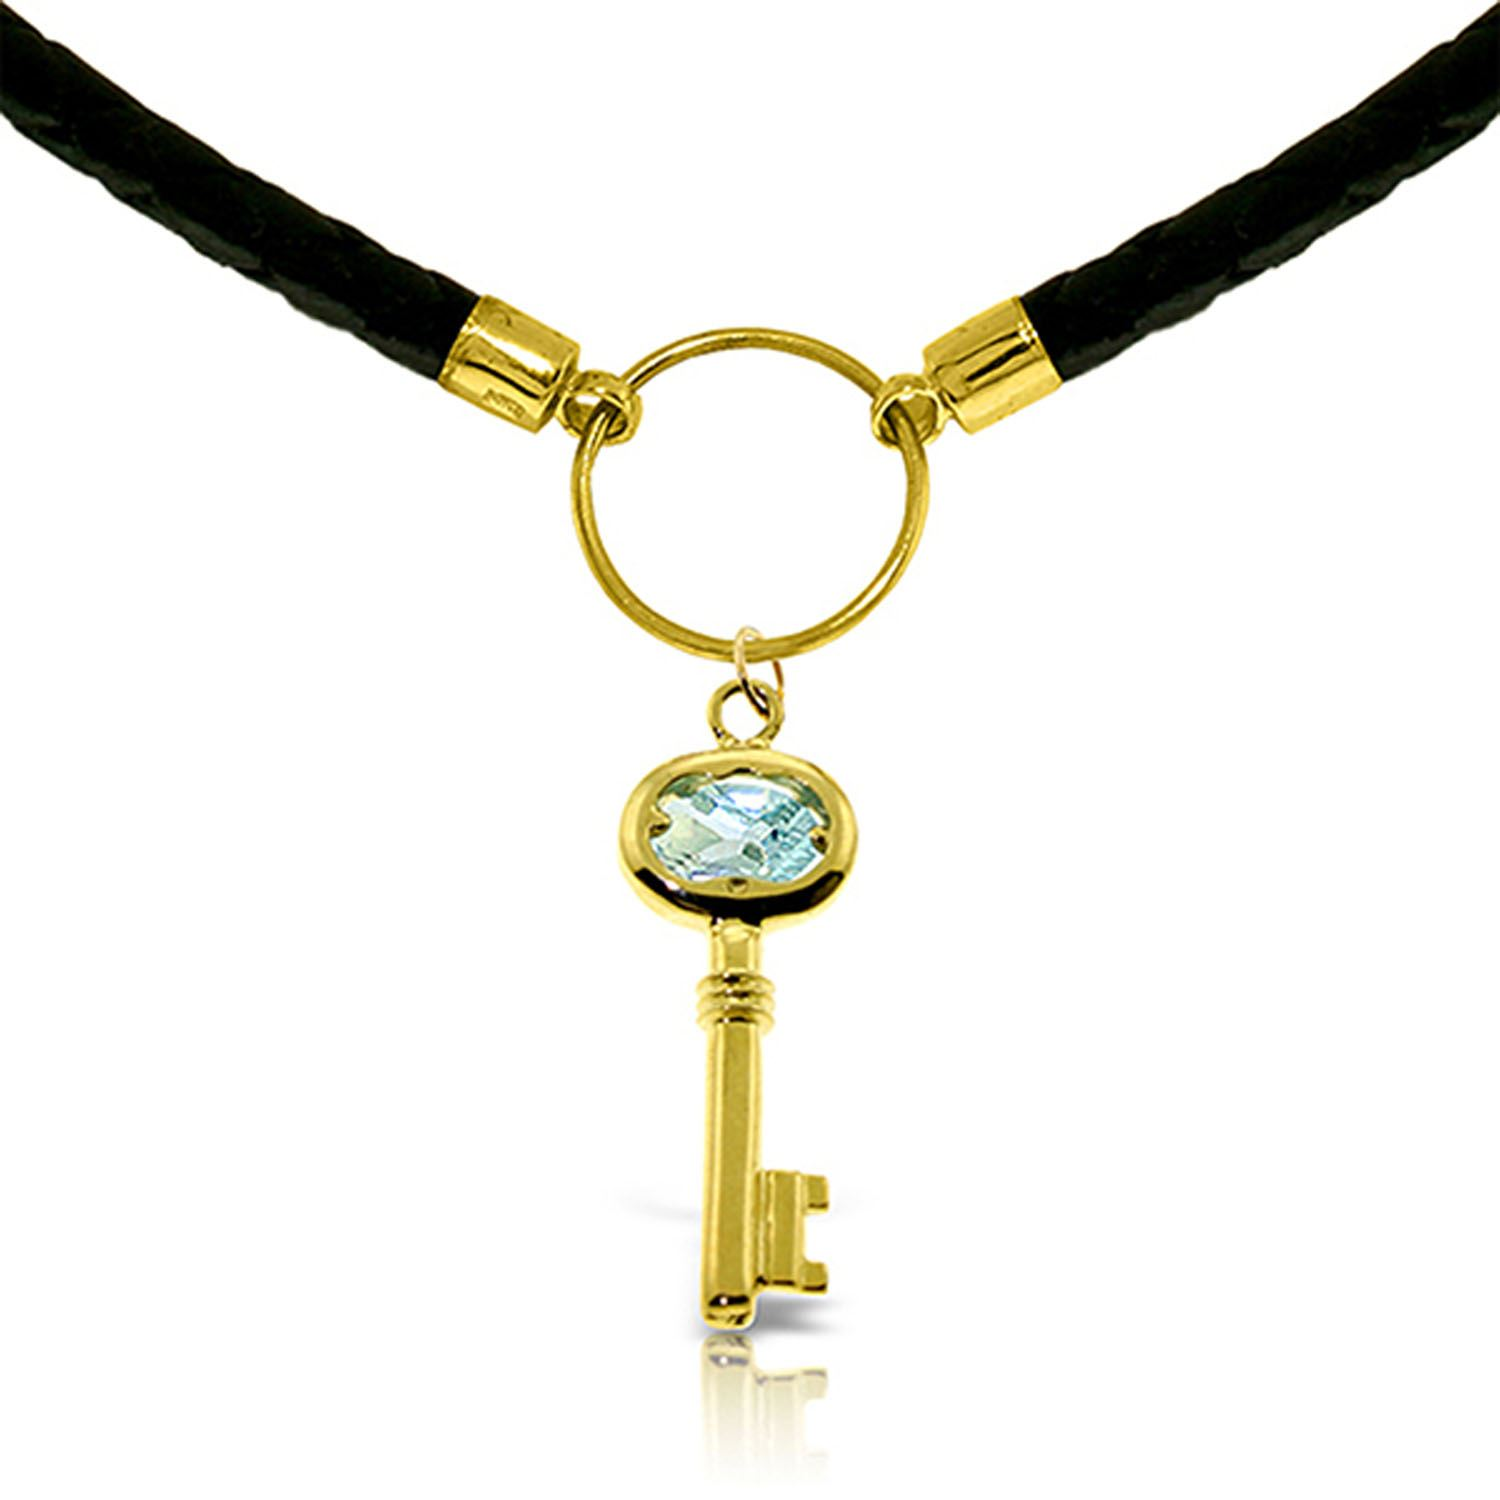 ALARRI 0.5 Carat 14K Solid Gold Leather Key Necklace Aquamarine with 24 Inch Chain Length. by ALARRI